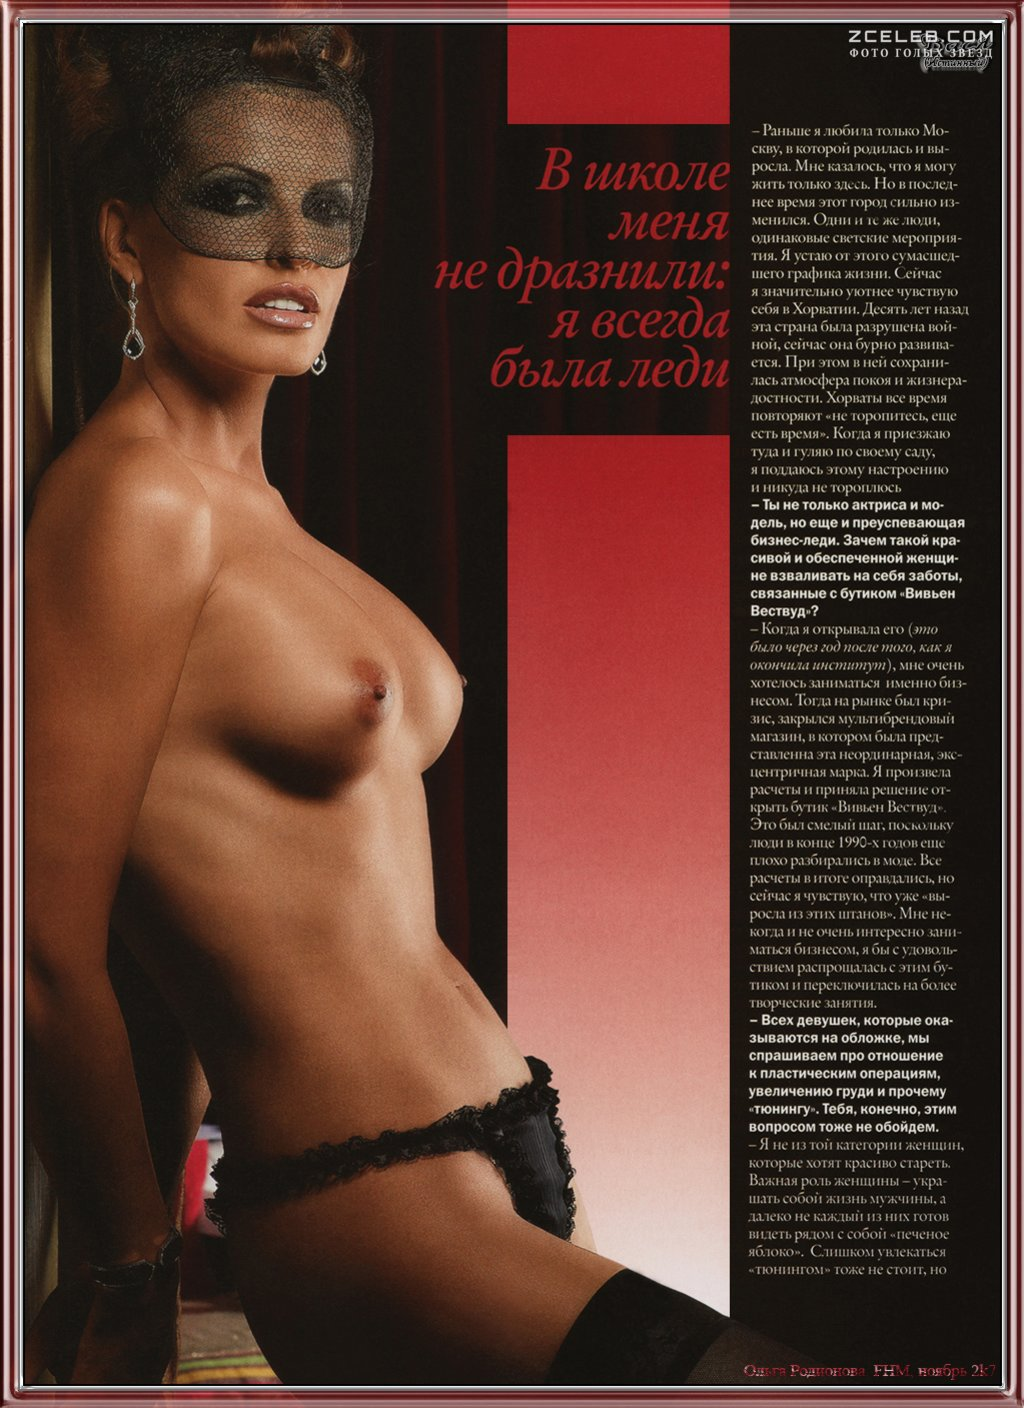 Olga rodionova, photo, biography